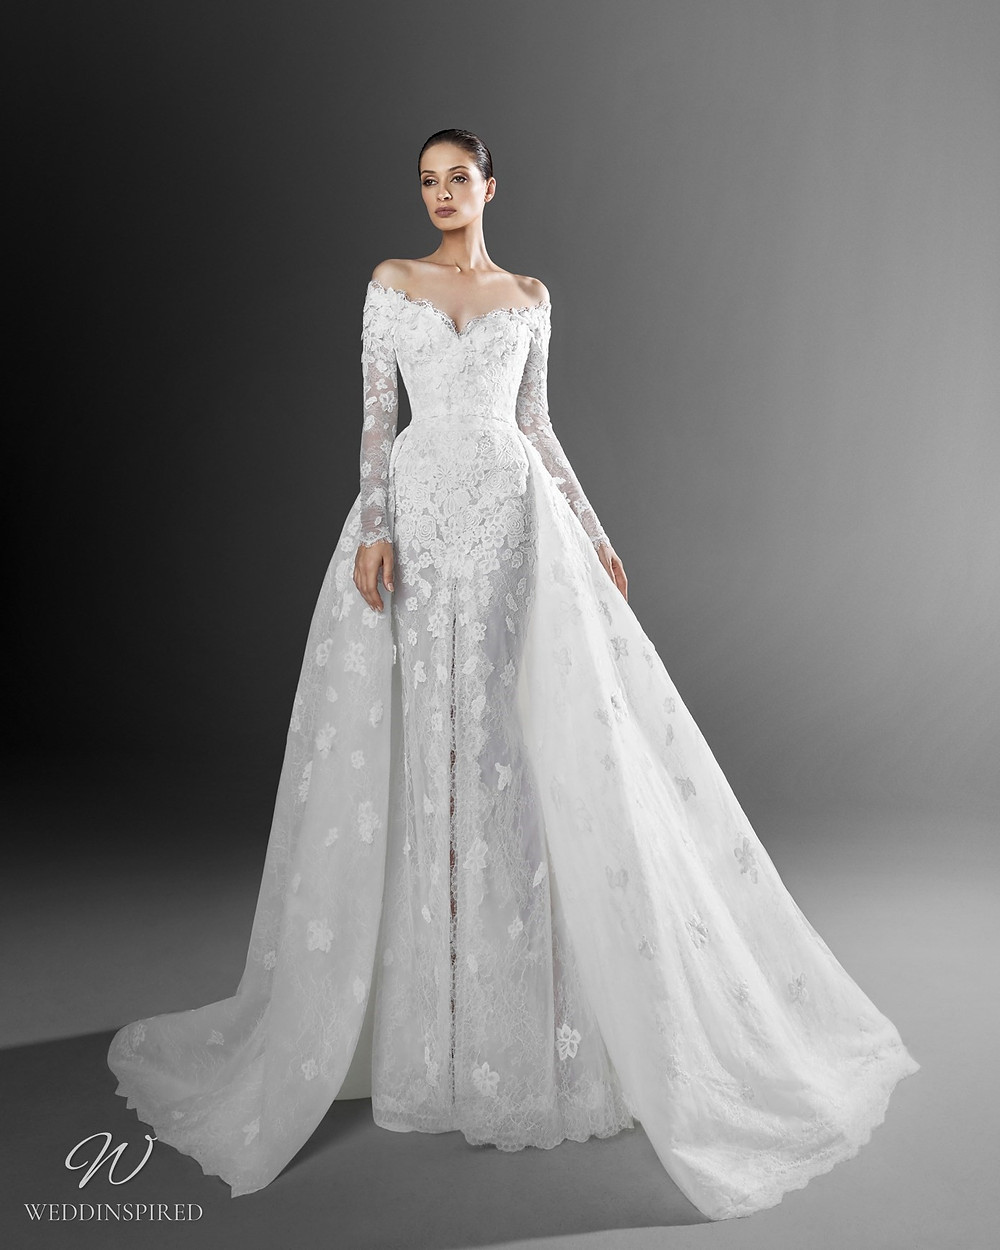 A Zuhair Murad mermaid off the shoulder wedding dress with lace, long sleeves and a detachable skirt